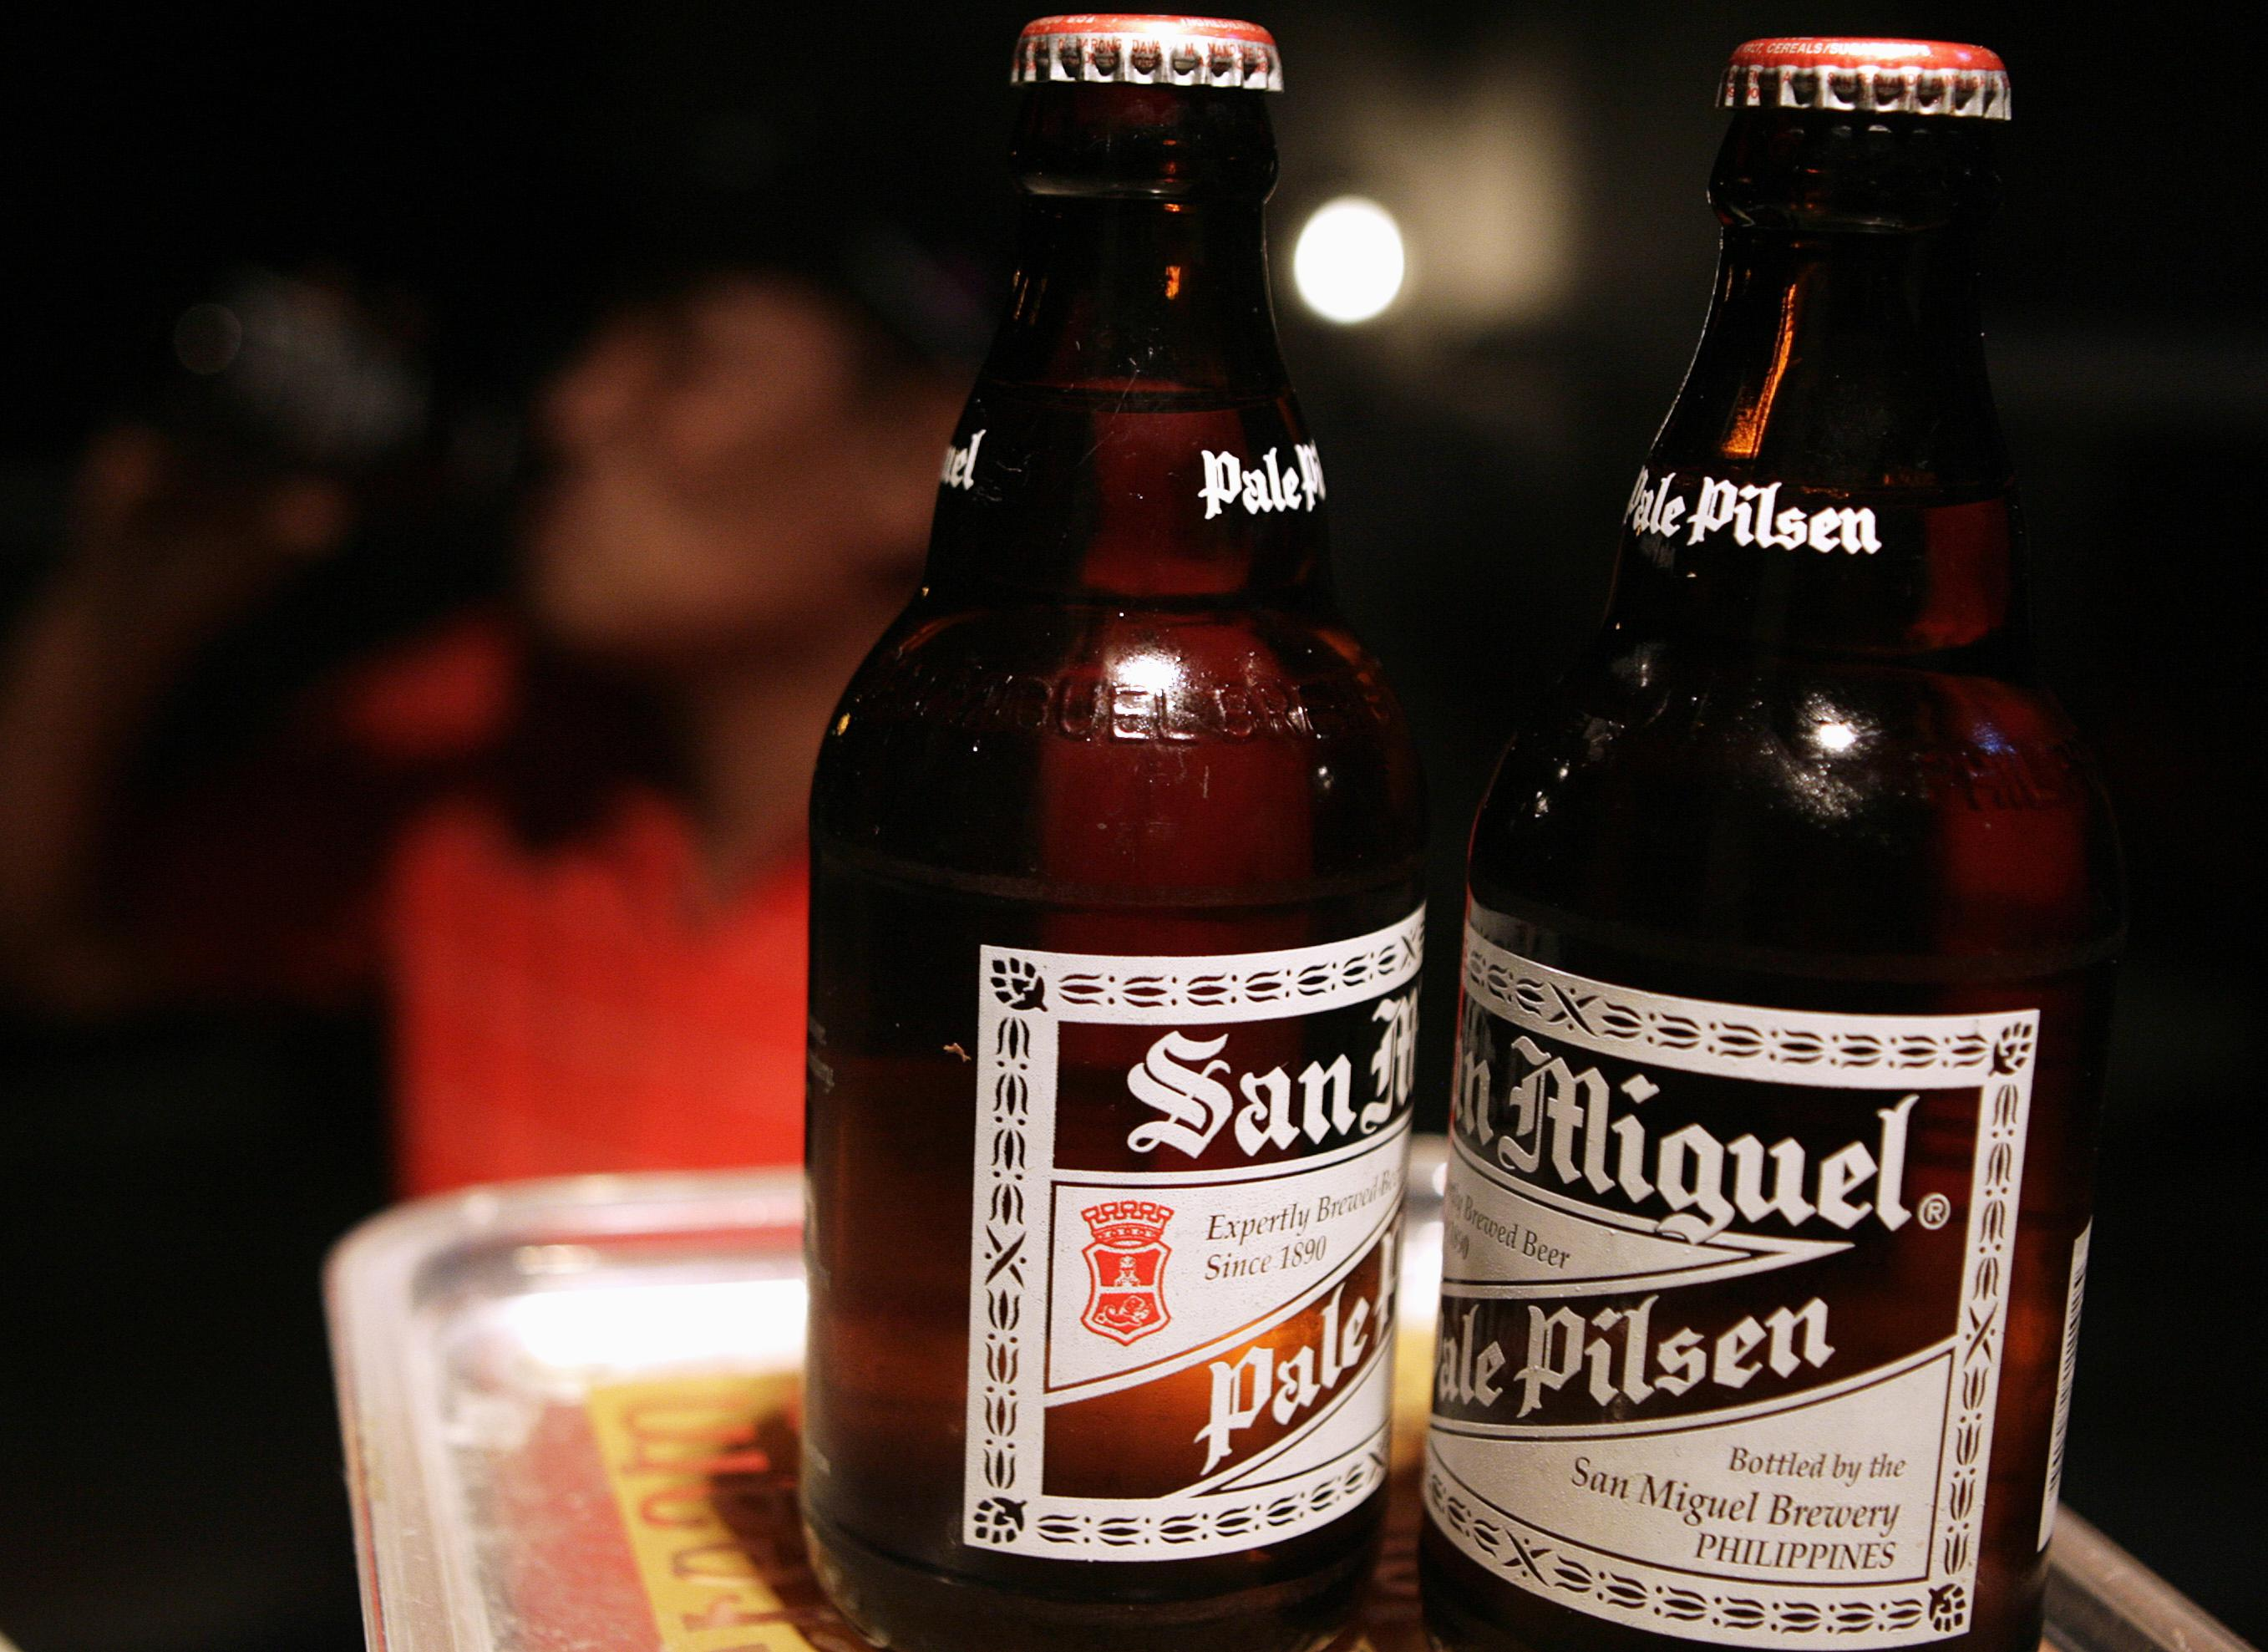 San Miguels join forces to expand beer brand - Nikkei Asian Review